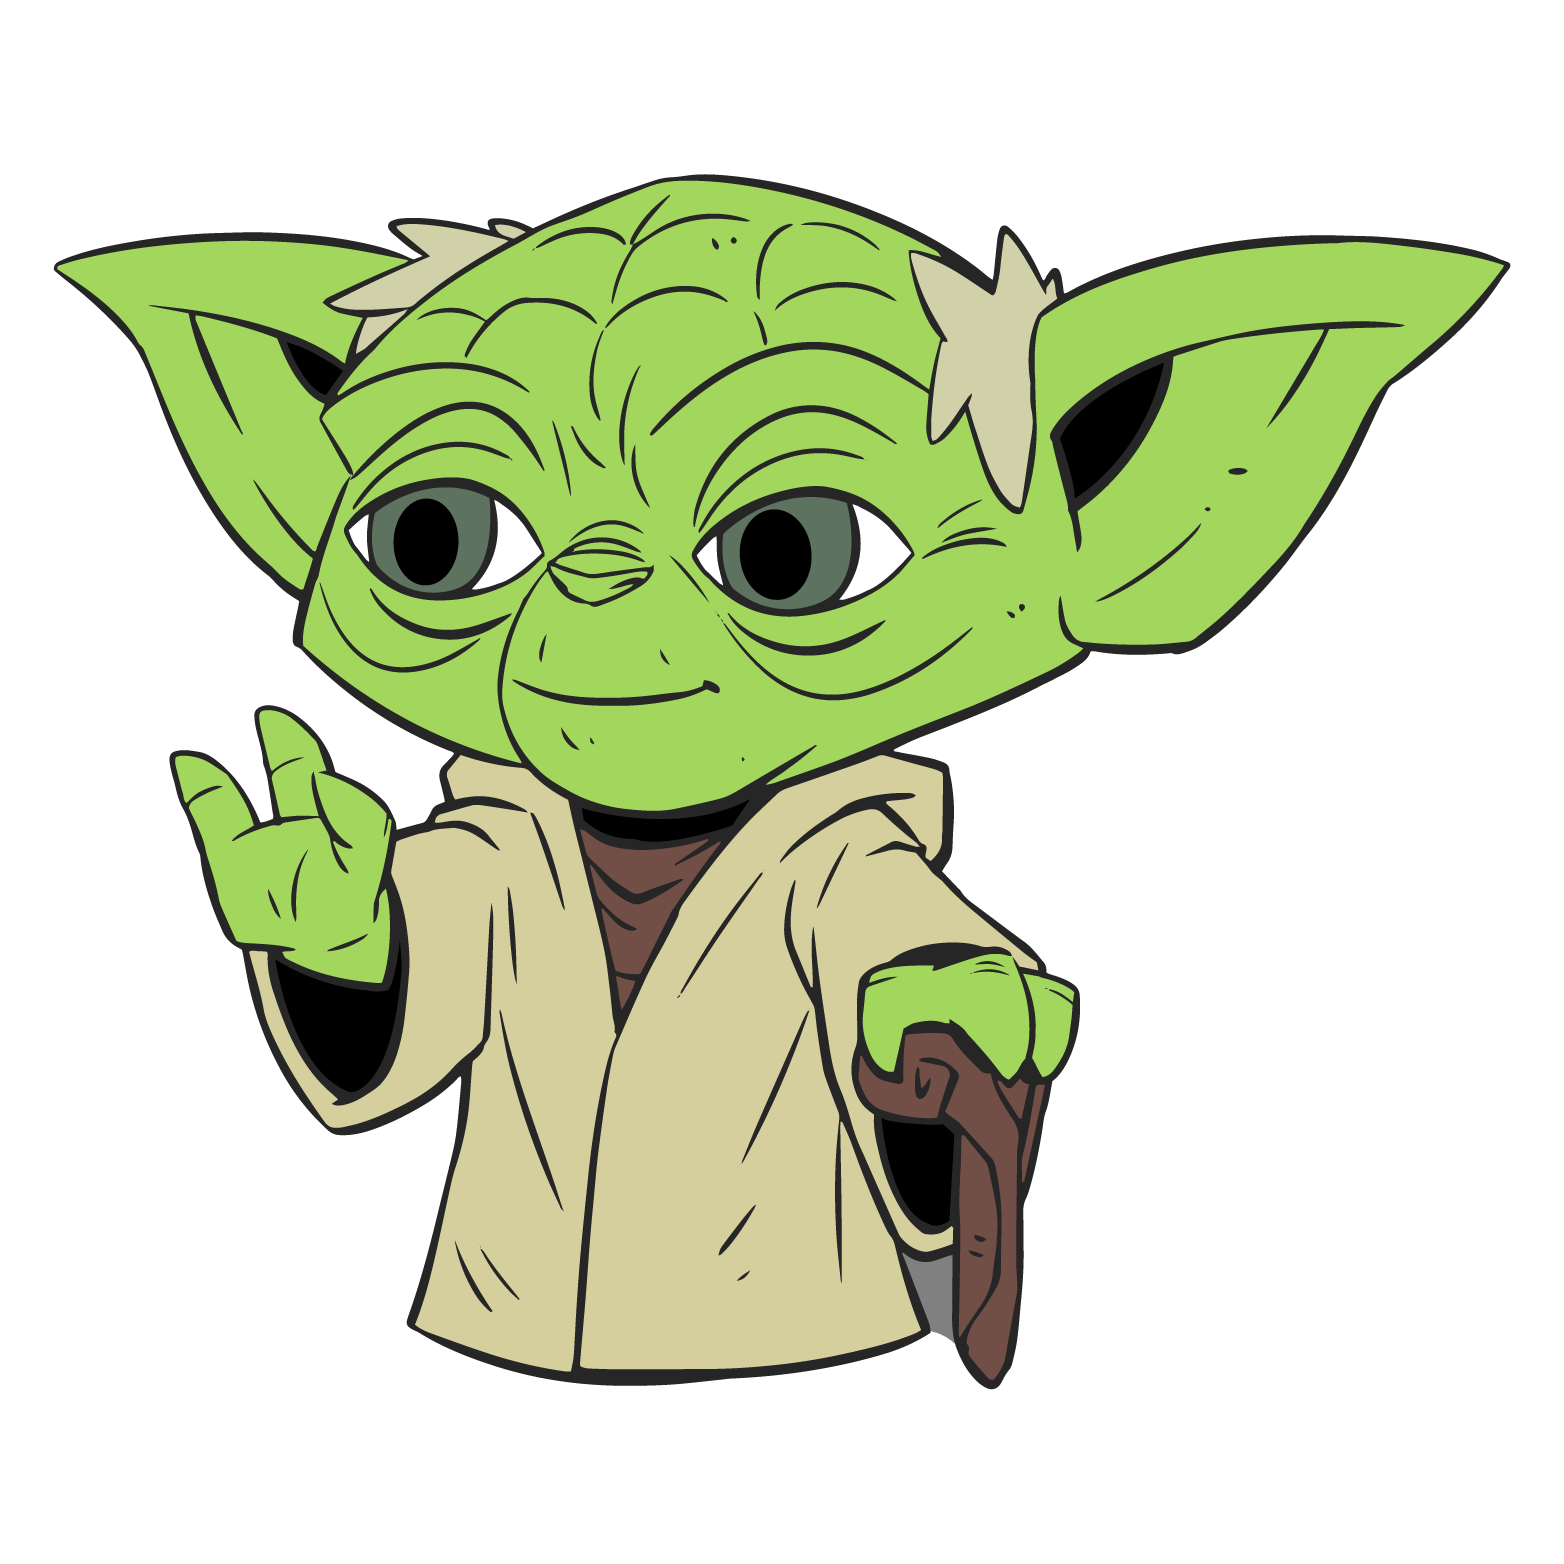 Clipart baby yoda, Clipart baby yoda Transparent FREE for.